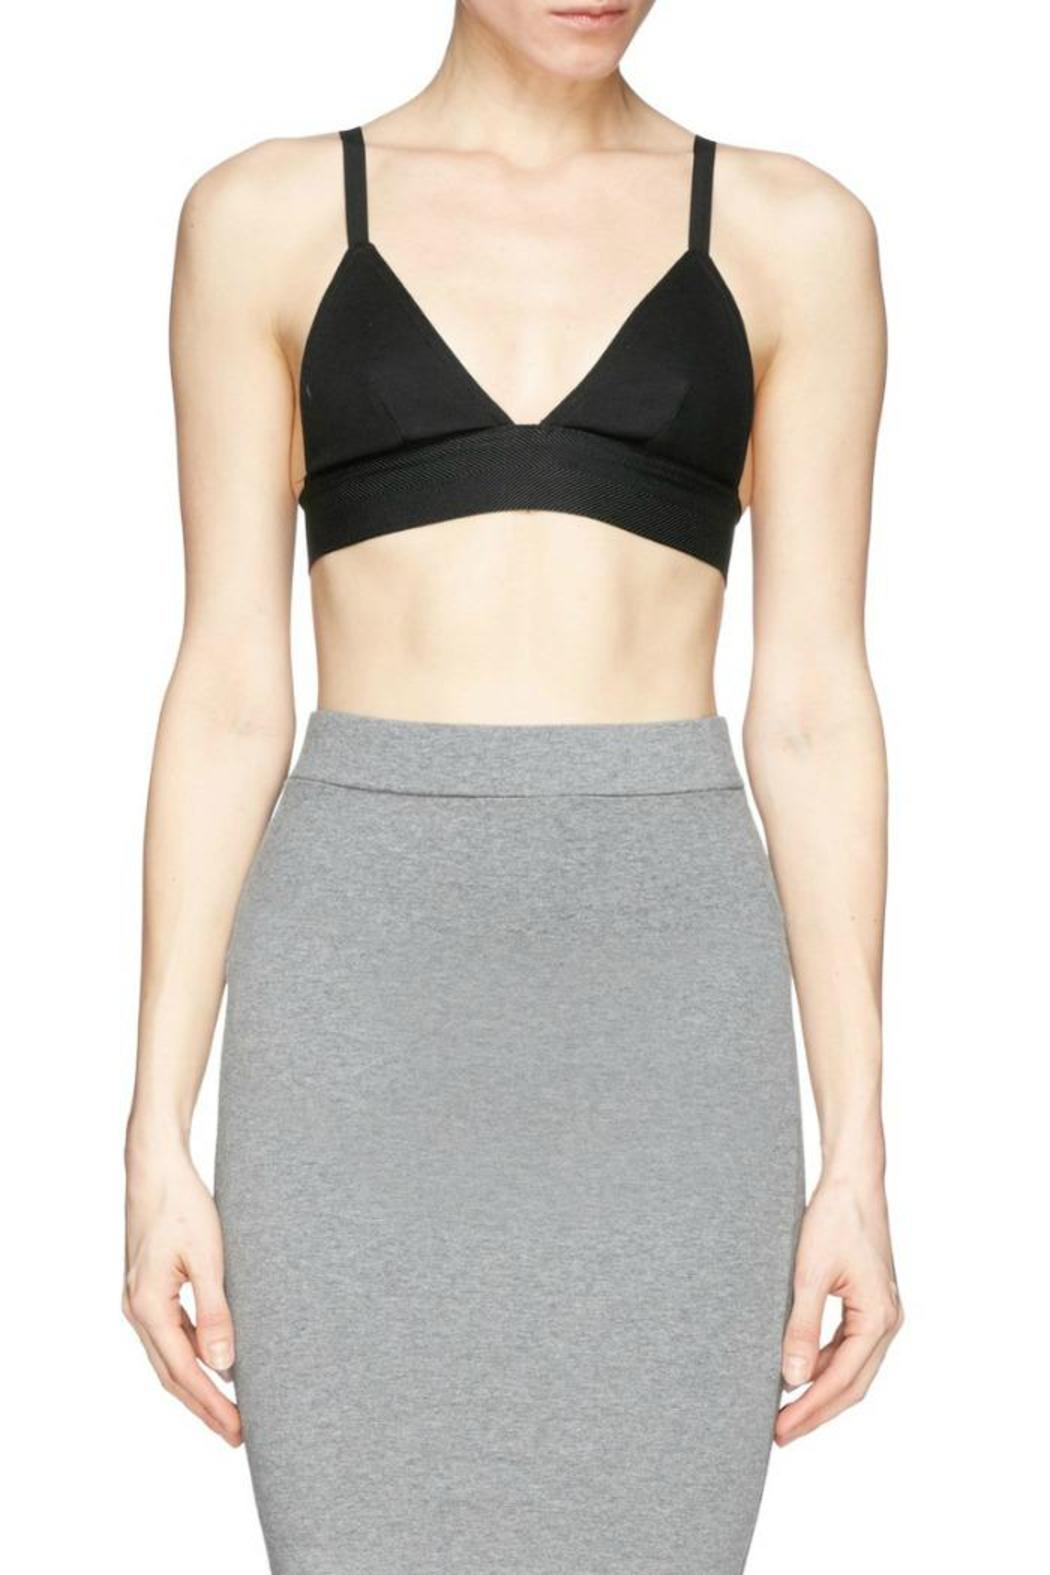 T by Alexander Wang Stretch Pique Triangle Bra - Front Cropped Image